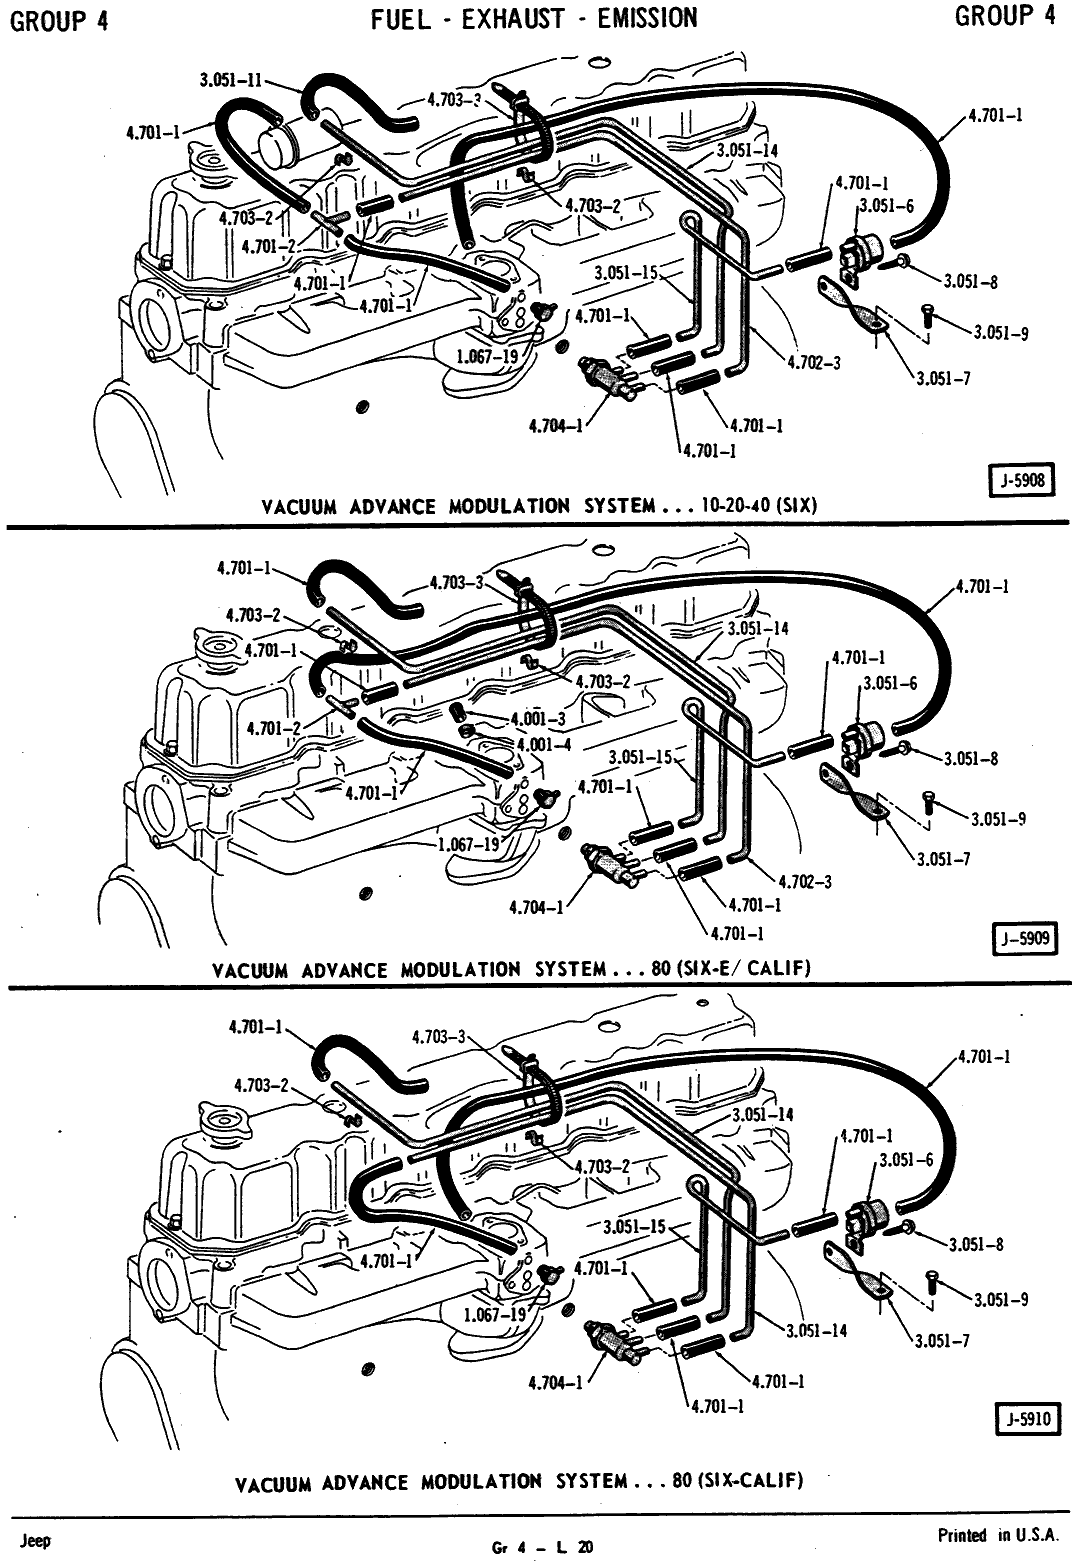 hight resolution of 1998 jeep cherokee vacuum hose diagram wiring diagram name vacuum line diagram for a 2000 jeep cherokee sport 4 0